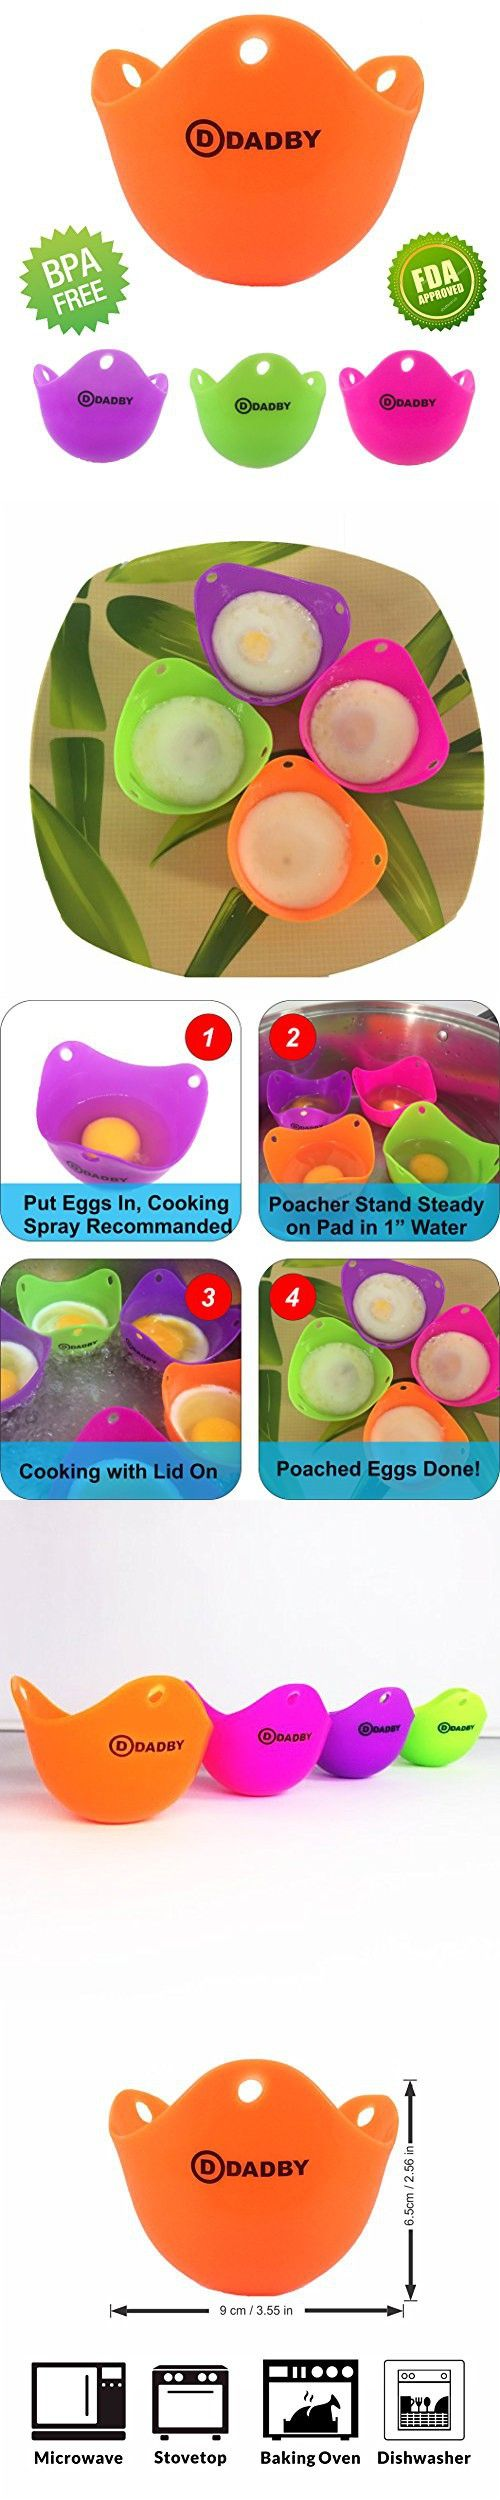 Egg Poacher - Premium Silicone Egg Poacher Cups by DADBY - BPA Free, FDA Approved - Set of 4 Colorful - For Microwave or Stovetop Egg Cooking - Dishwasher Safe - Poach Pods Kitchen Cookware